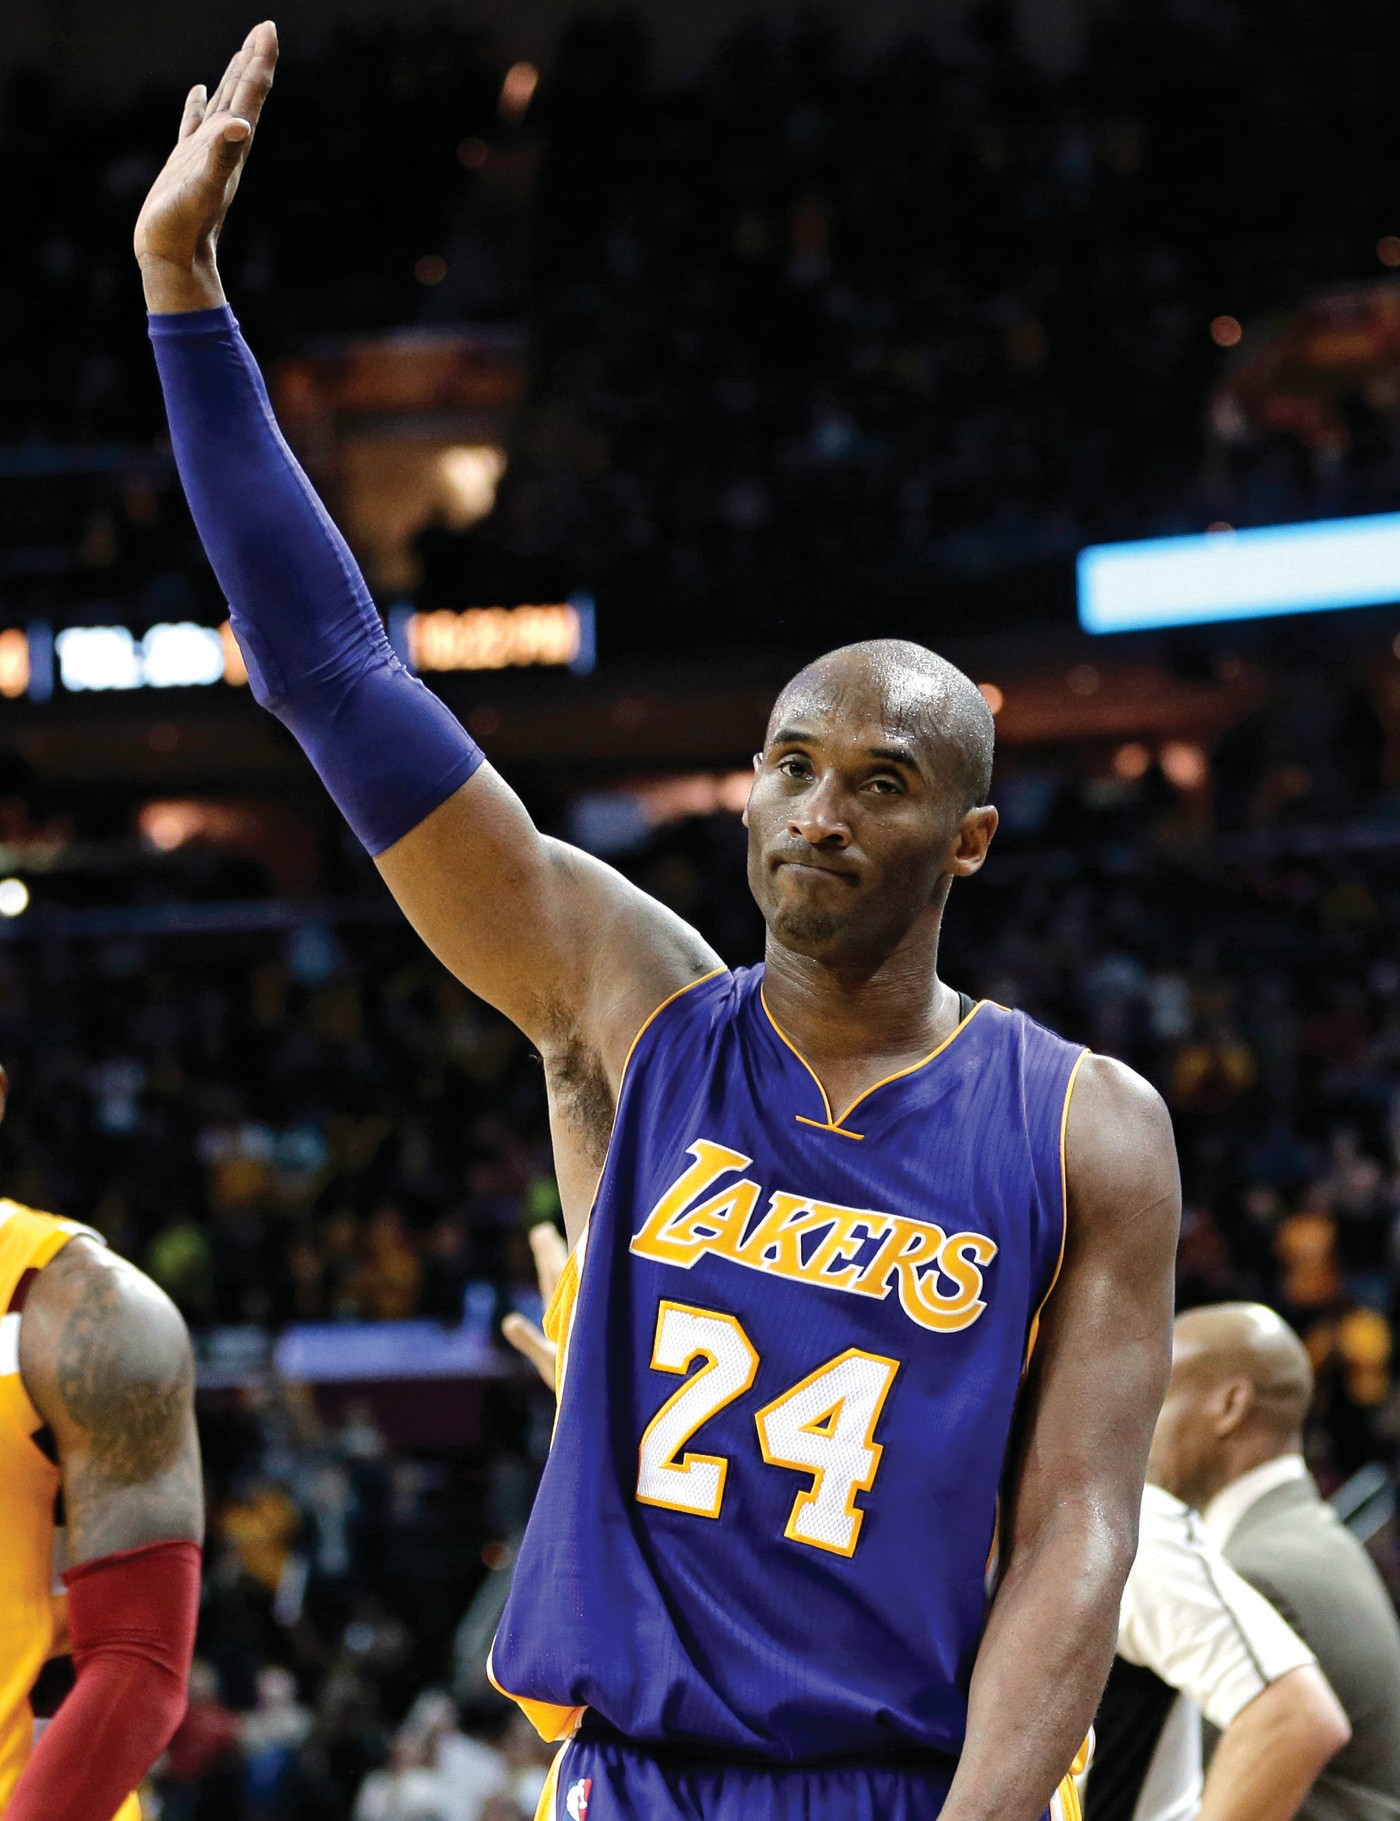 Los Angeles Lakers' Kobe Bryant, right, waves to the crowd as he leaves the game in the second half on Wednesday at Cleveland.